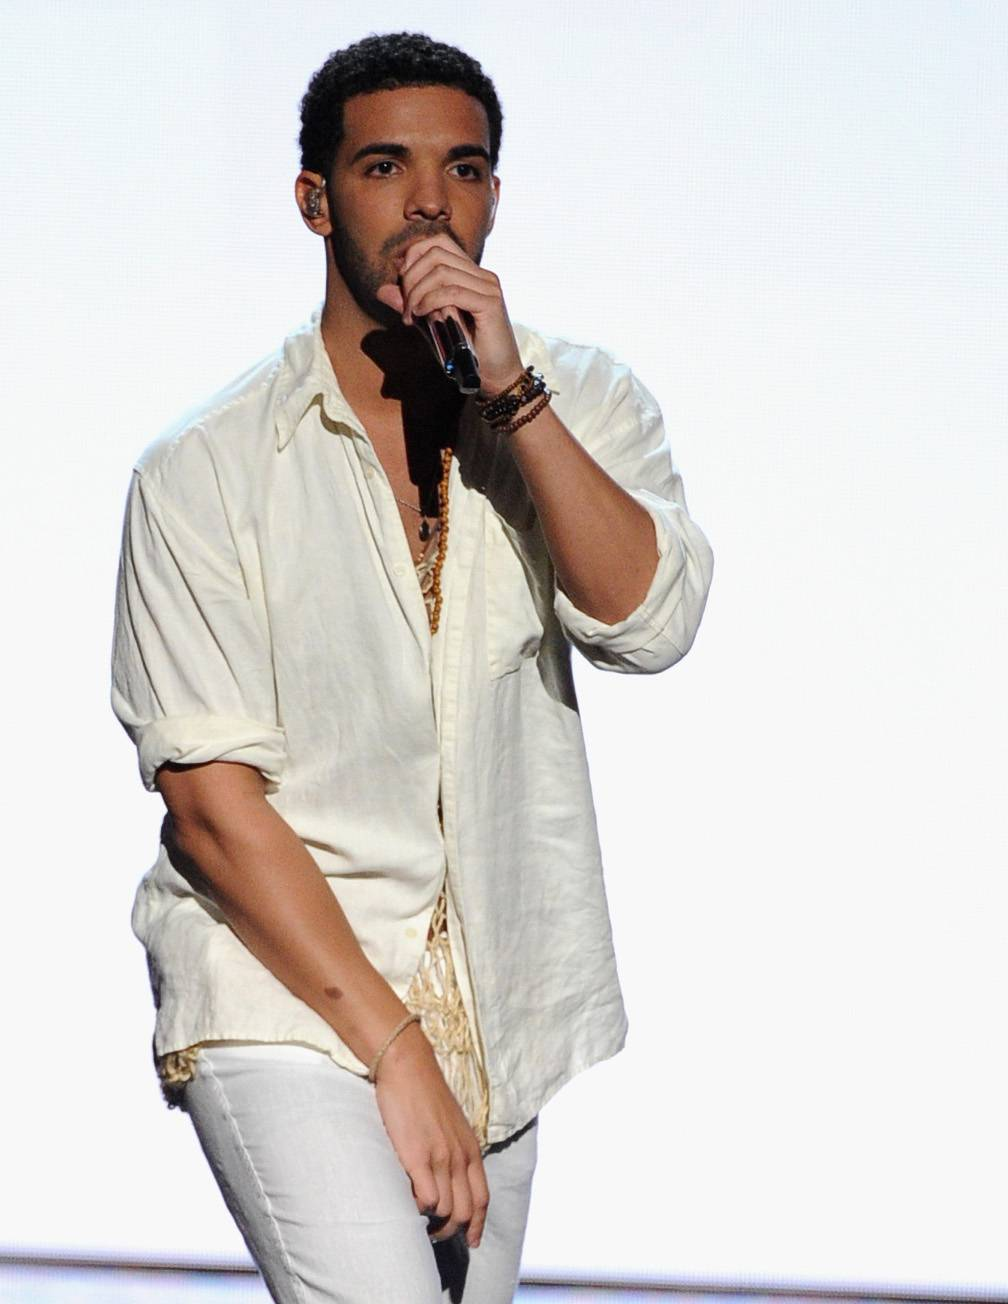 """Drake - Drake doesn?t give props to everybody but considers the ?Jesus Walks? MC a god.?At the end of the day, I look up to Ye,"""" he said. """"? He?s a major influence if not the biggest influence in my career. Kanye?s mentored me through his decisions and I study the game overall, but him very closely.?(Photo: Kevin Winter/Getty Images)"""